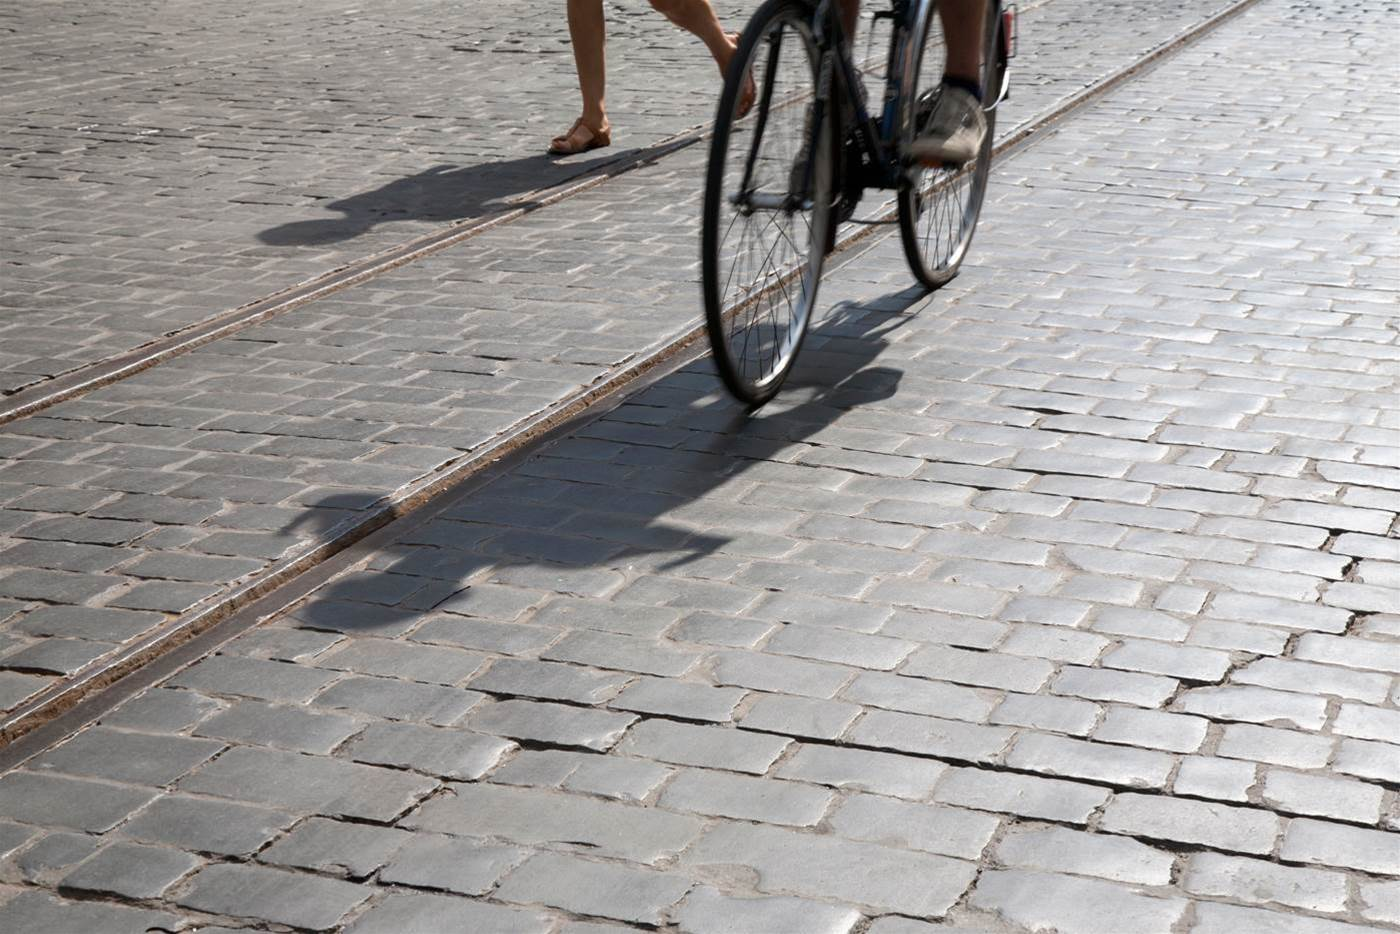 Watch: How to ride safely across rail and tram tracks